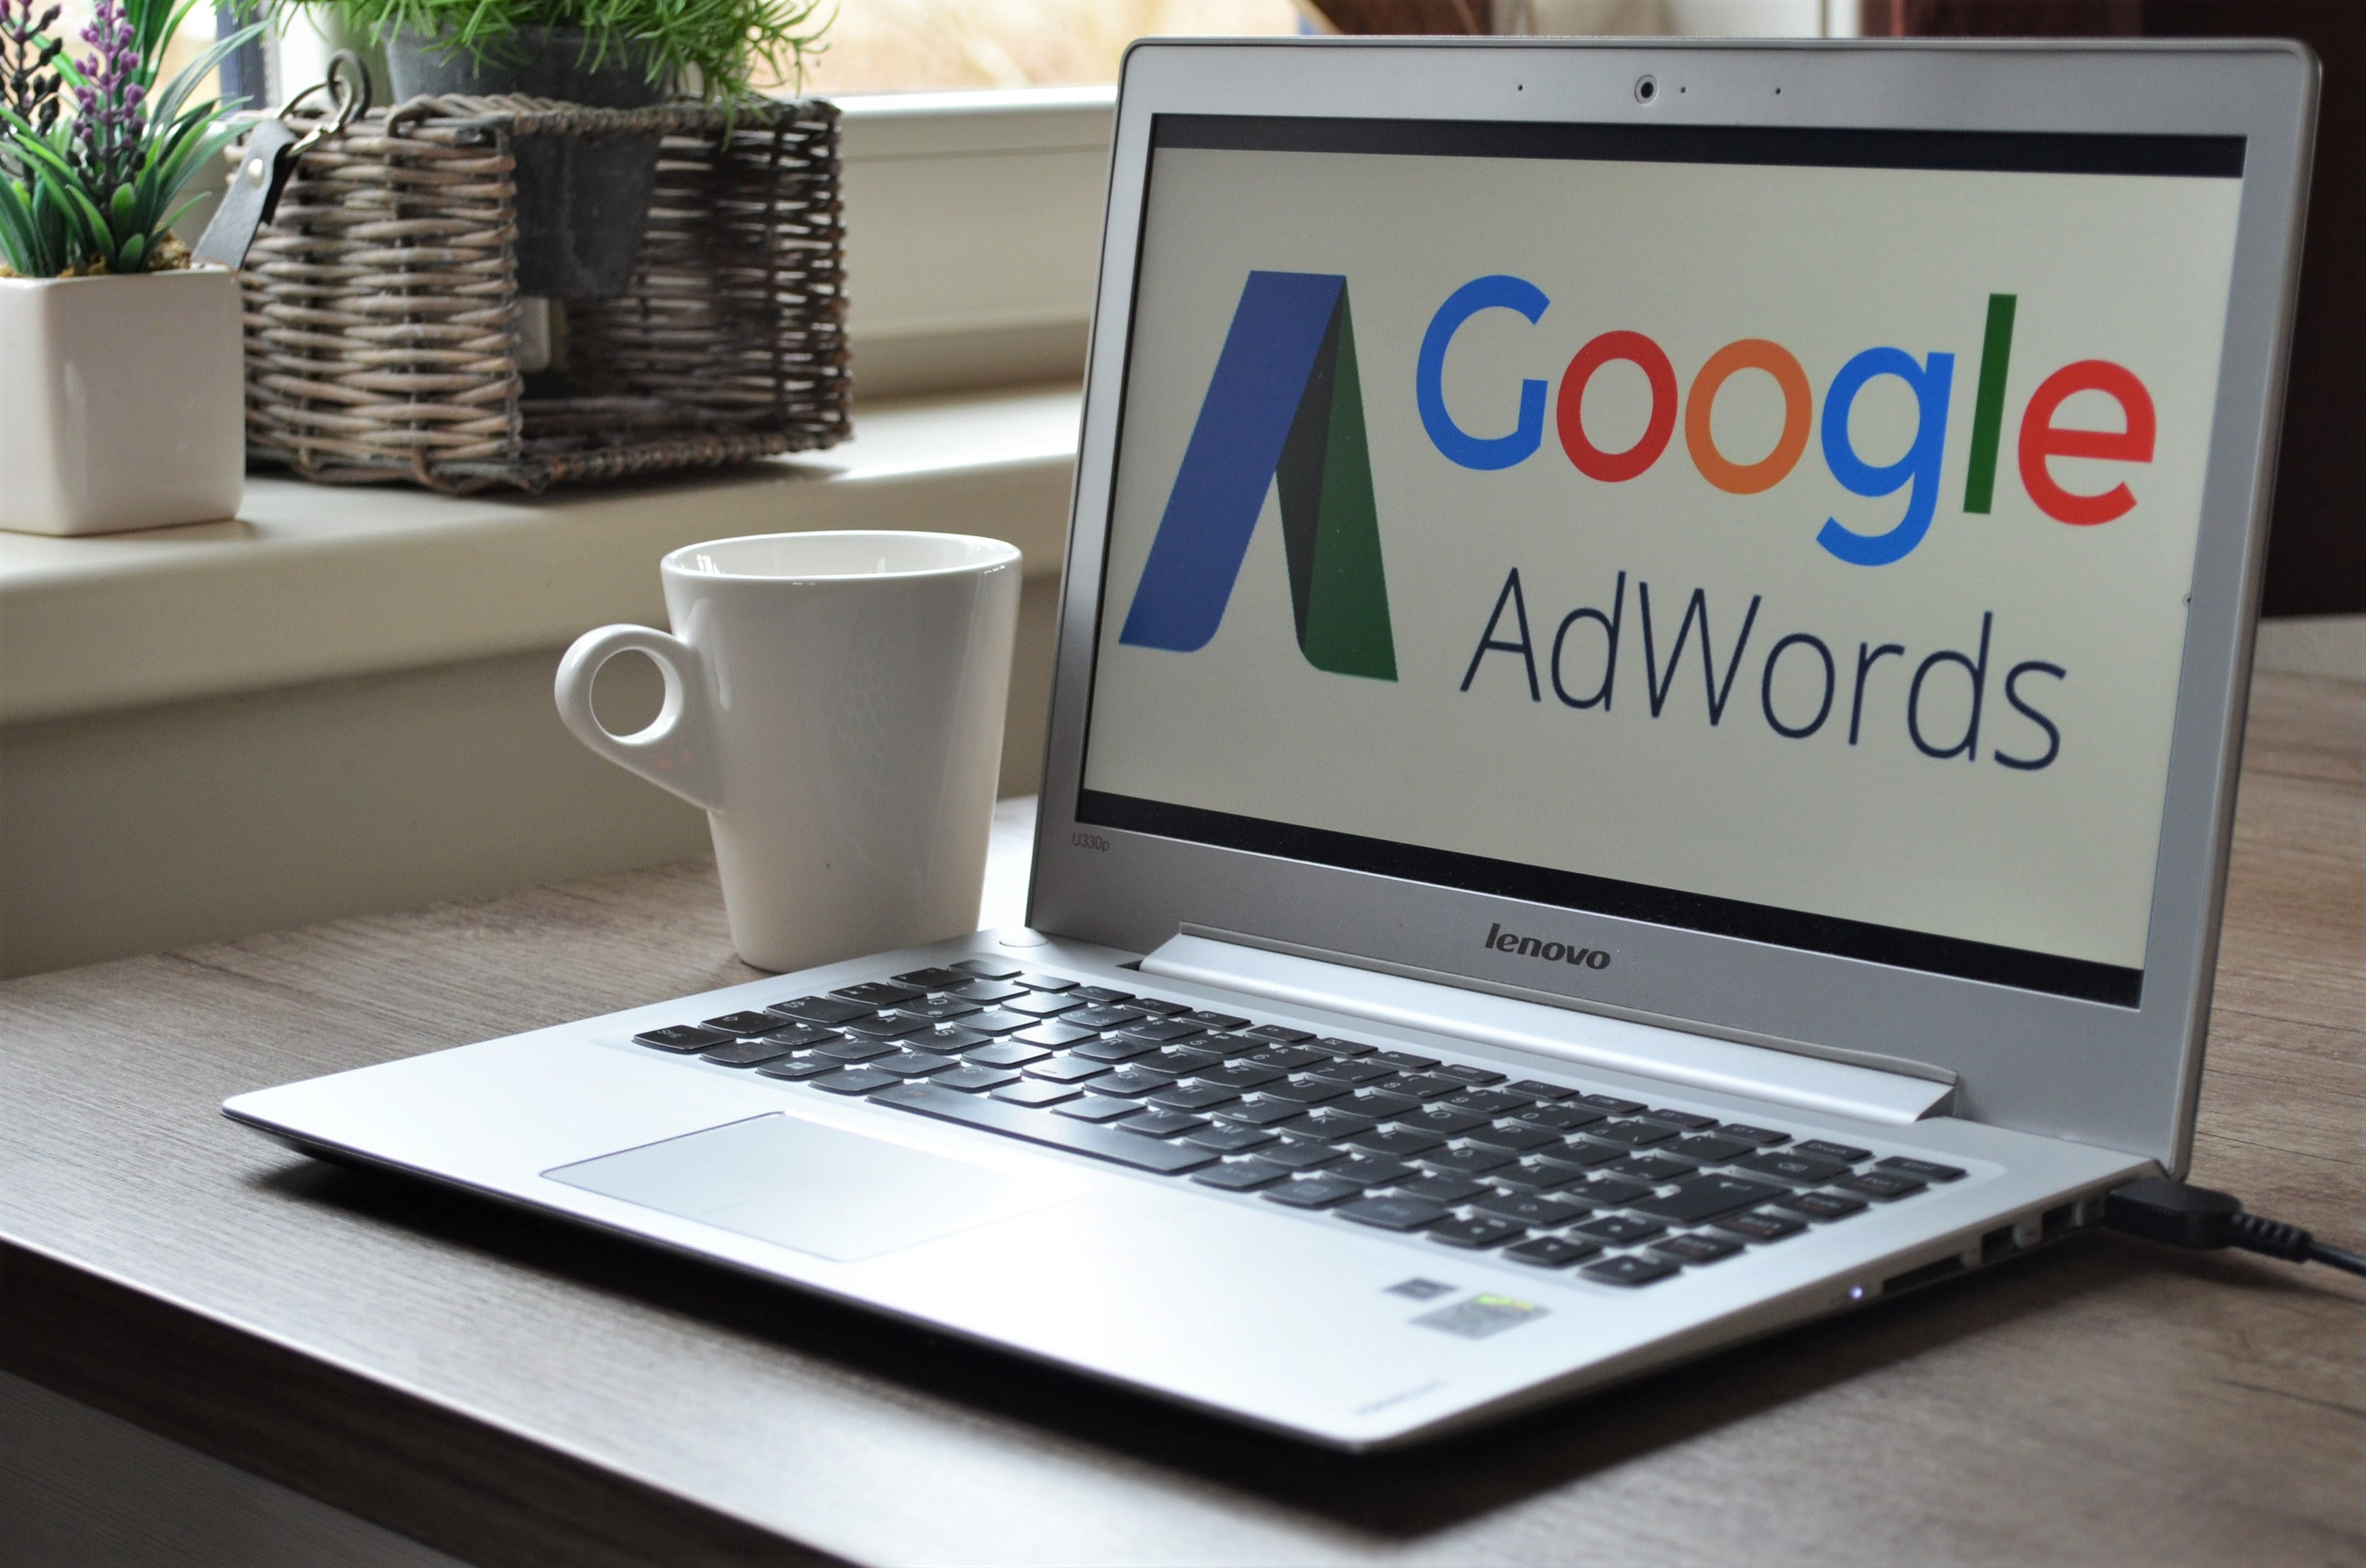 advertising, adwords, coffee